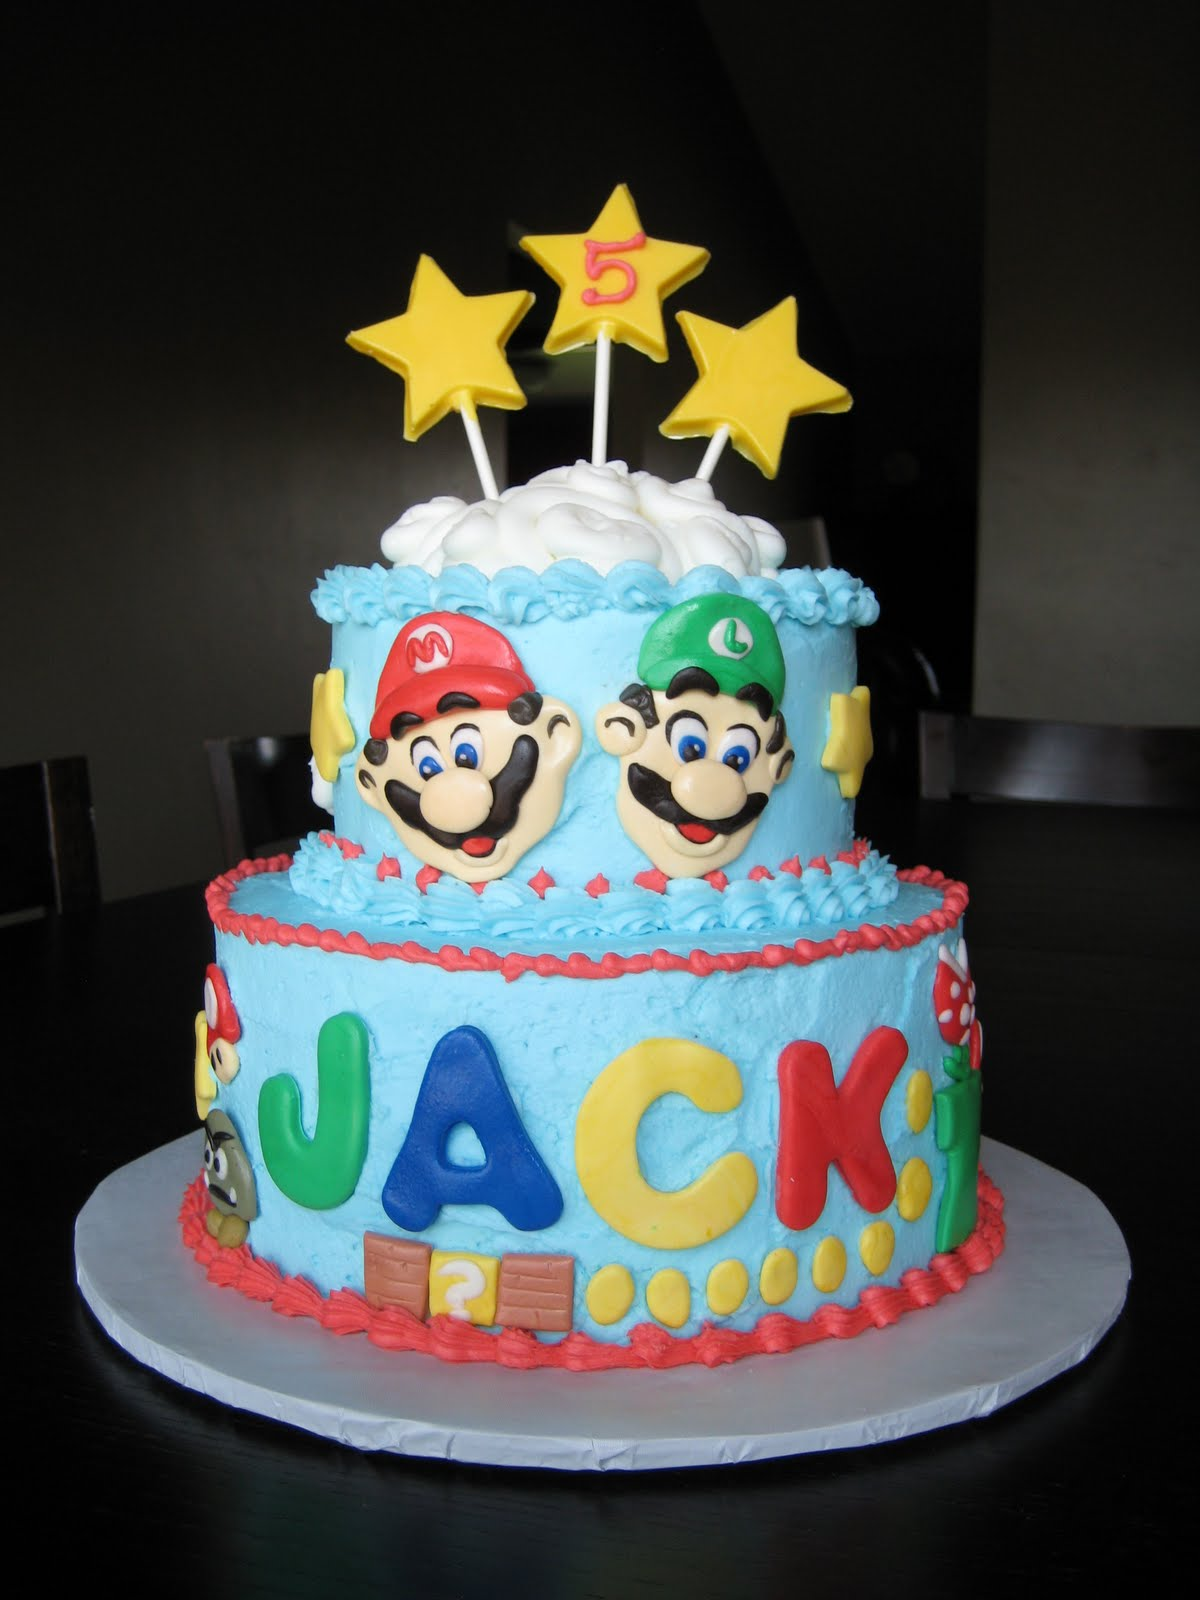 Edible Mario Cake Decorations